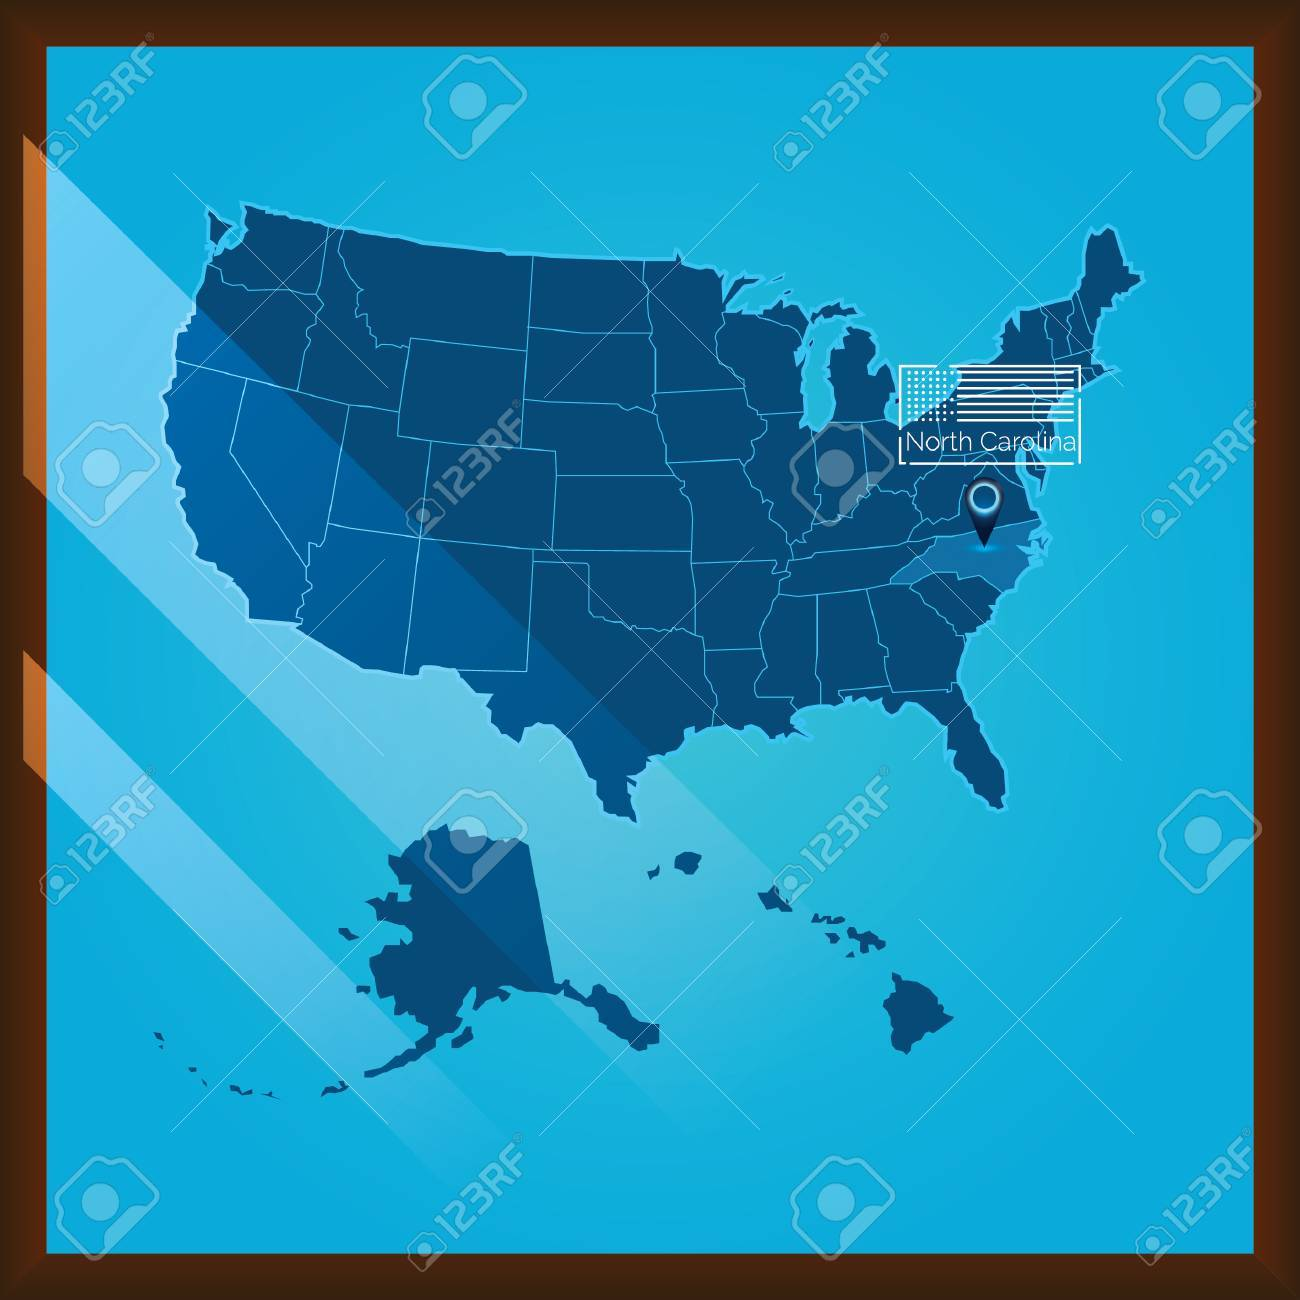 Map Of The United States North Carolina Highlighted Vector US - Us map nc